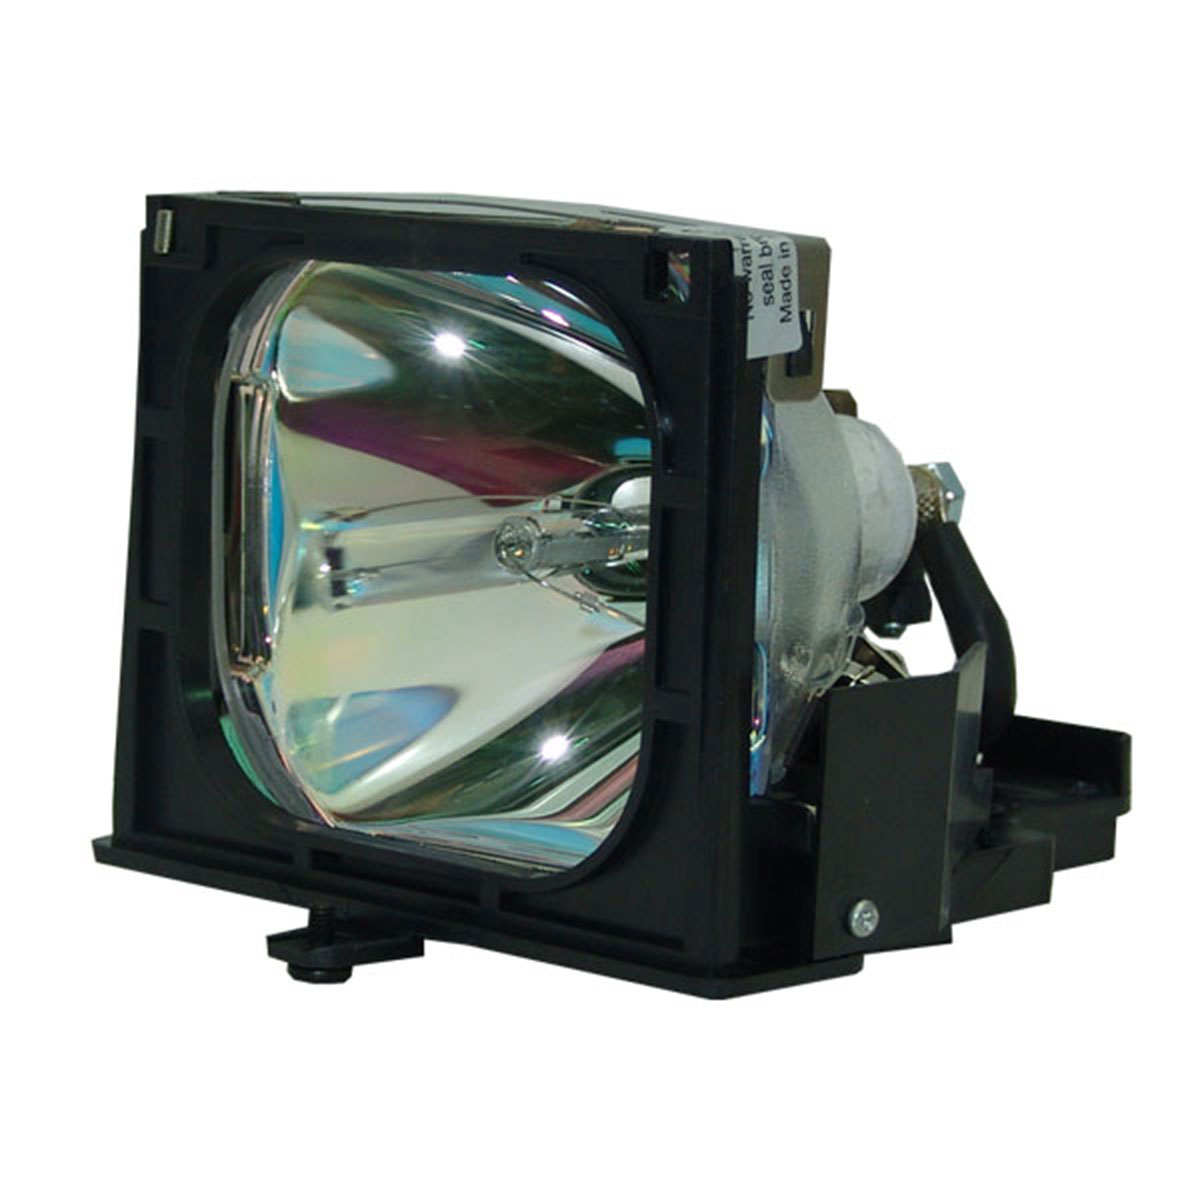 Original Philips Projector Lamp Replacement for Philips LCA3111 (Bulb Only) - image 5 of 5